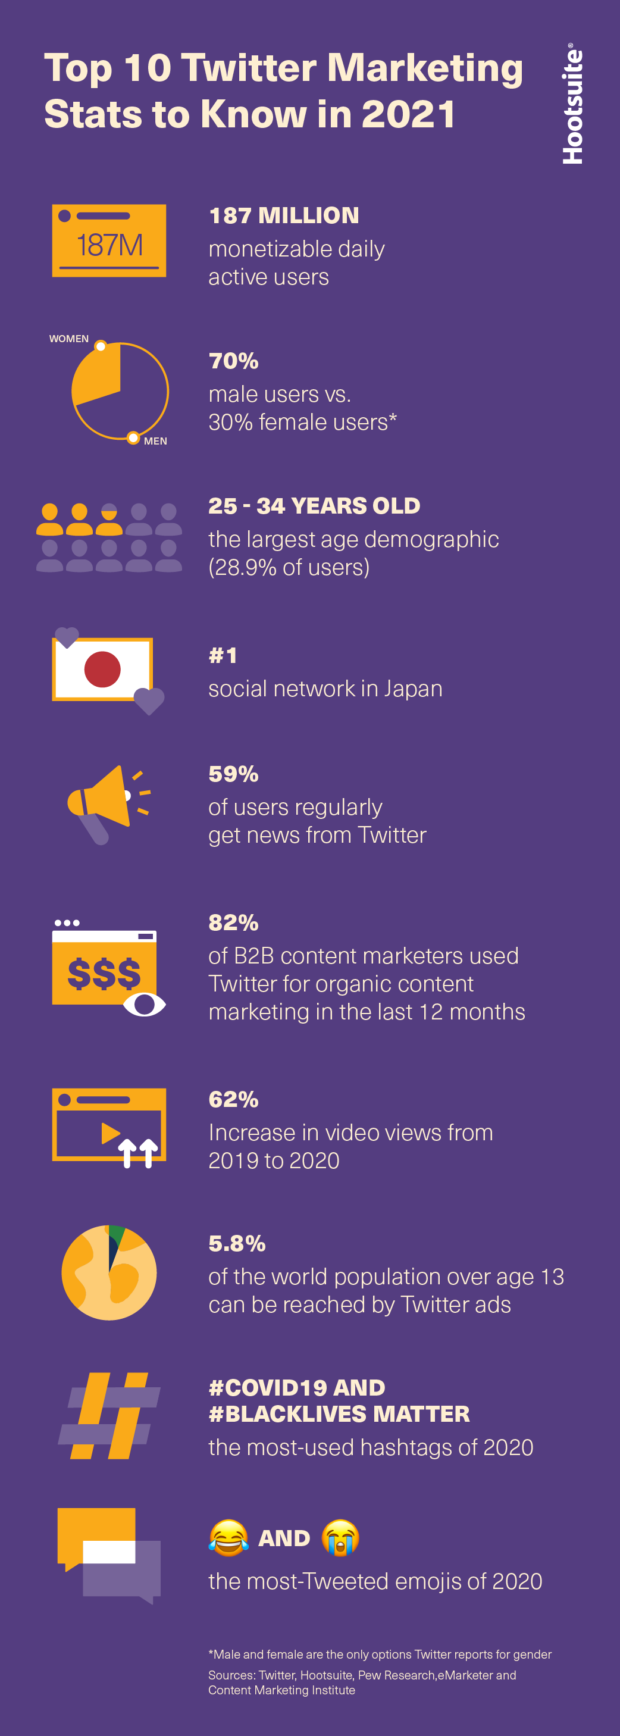 Top 10 Twitter statistics for 2021